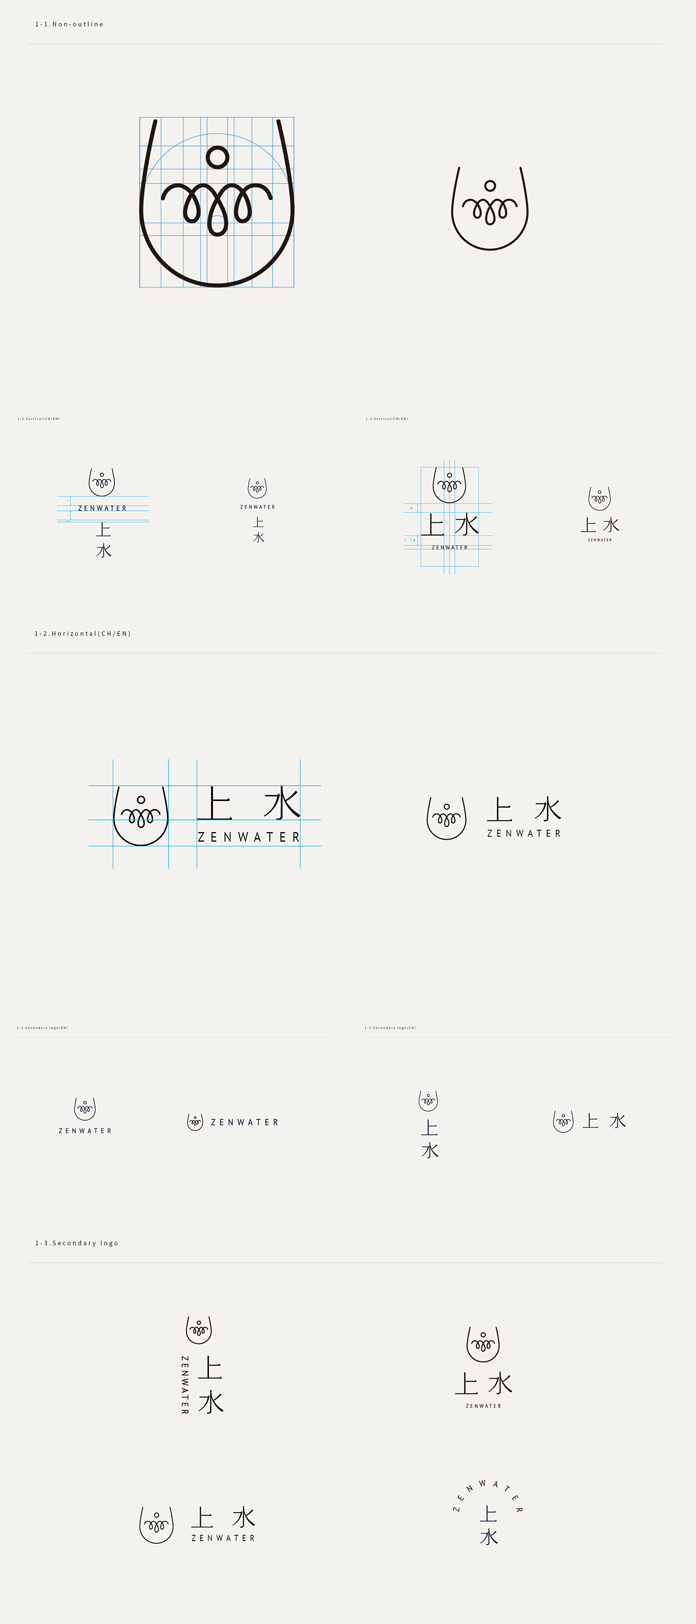 ZENWATER logo versions in Chinese and English.